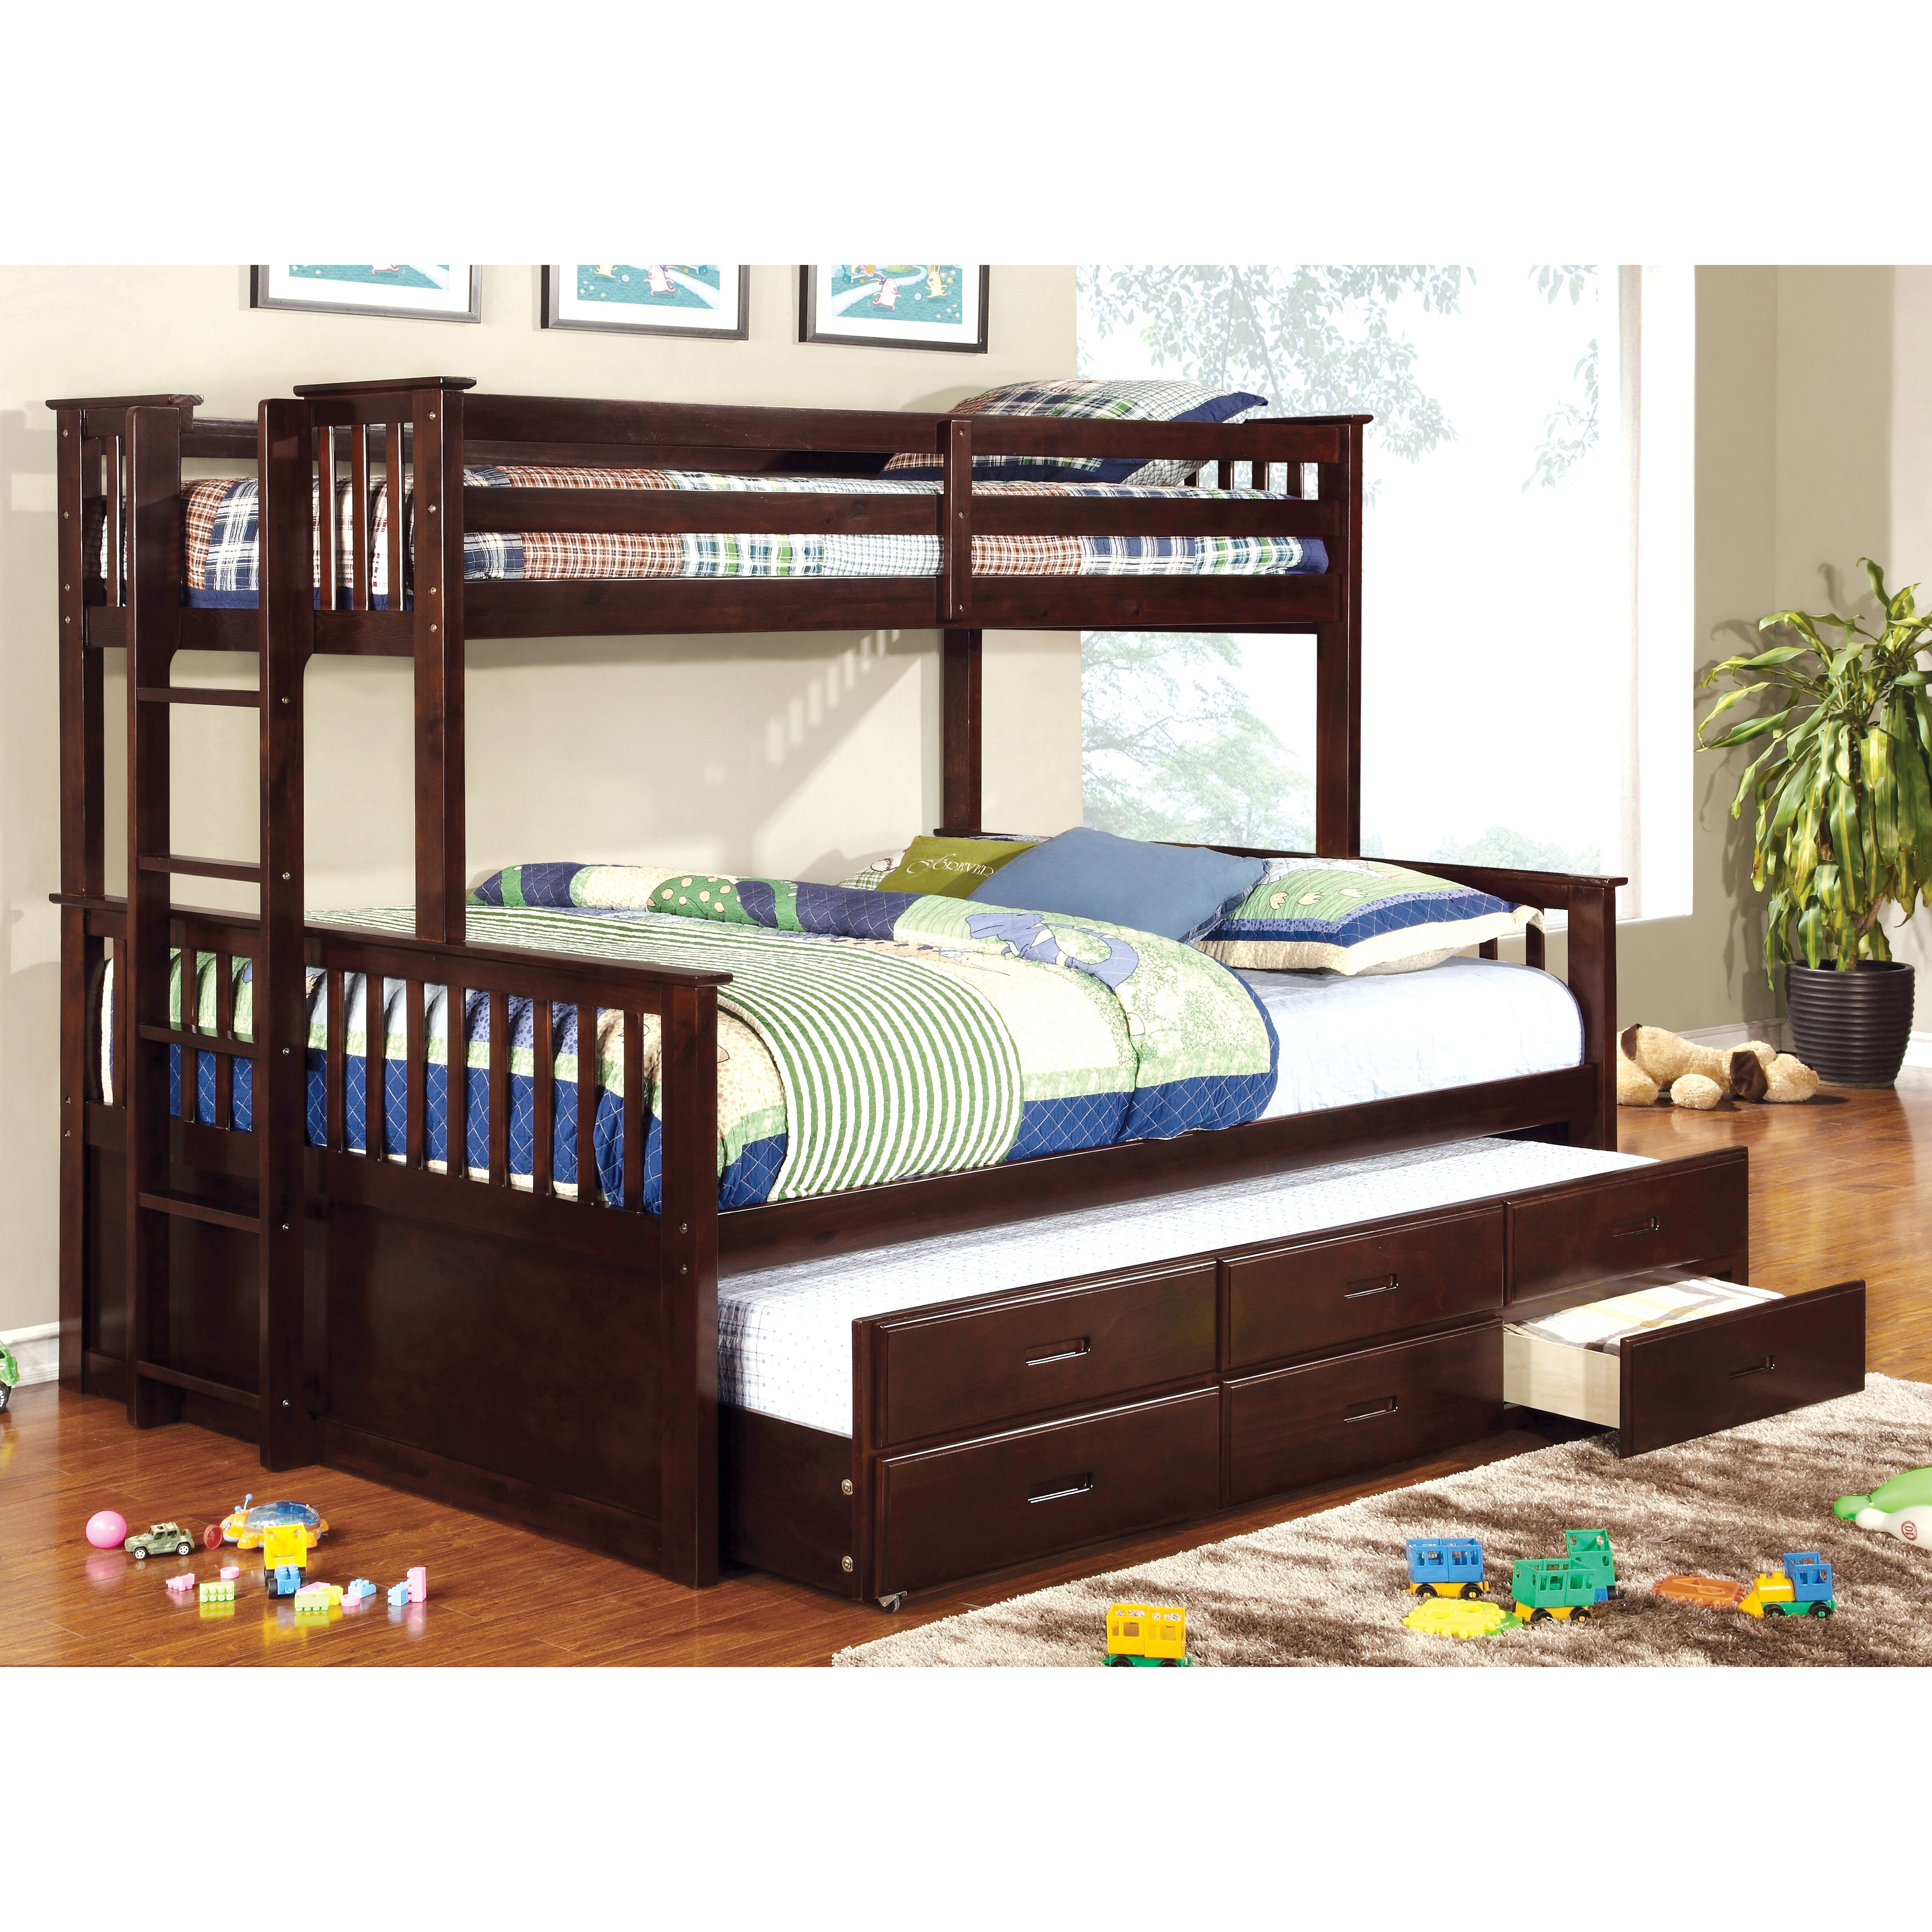 Hokku Designs Emmerson Twin over Queen Bunk Bed & Reviews